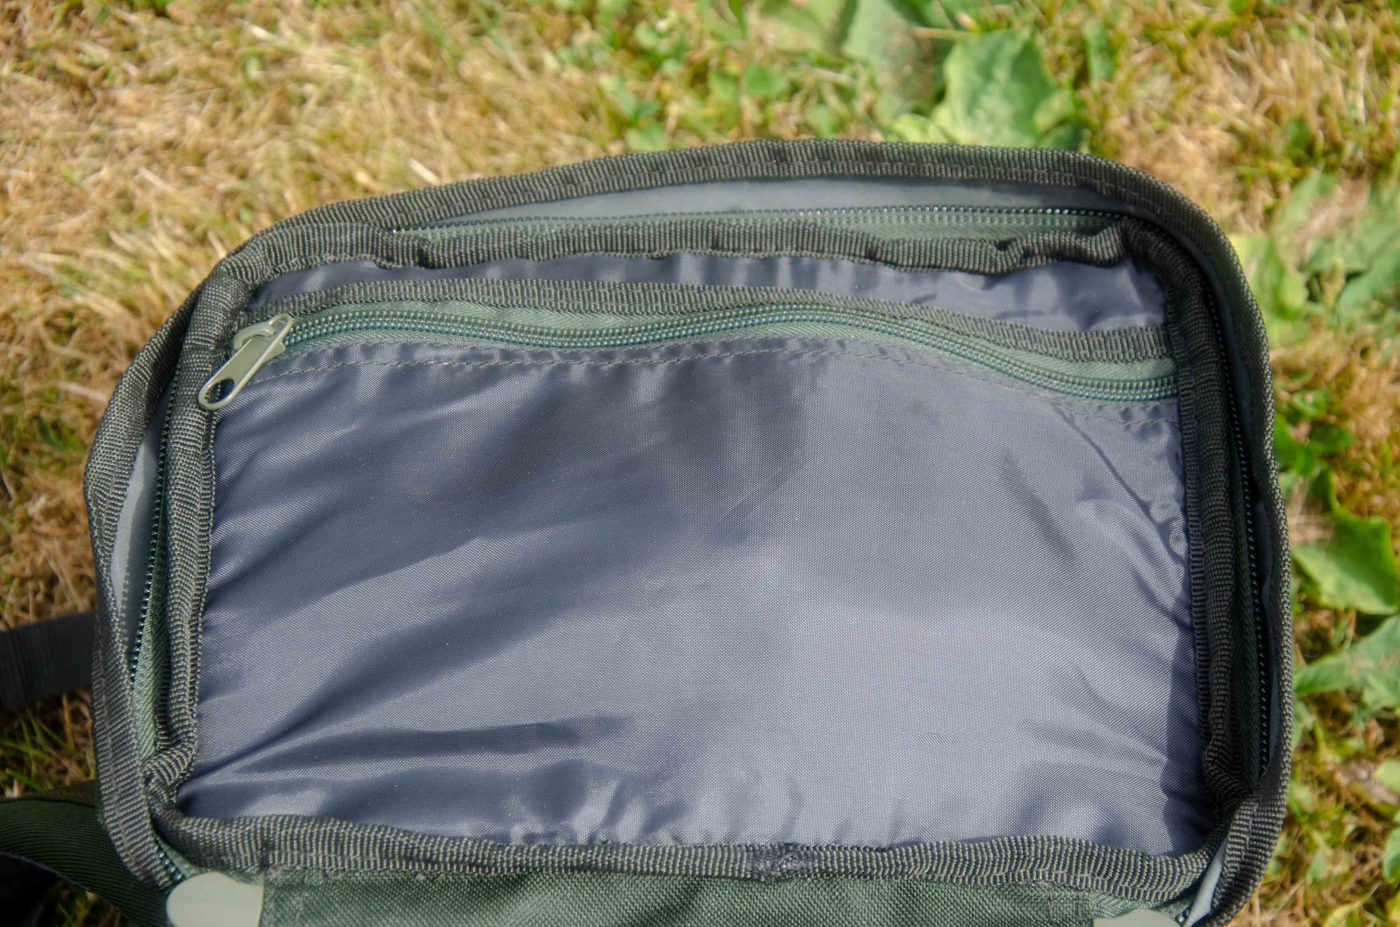 Recension av Saber Tackle - Compact Rucksack